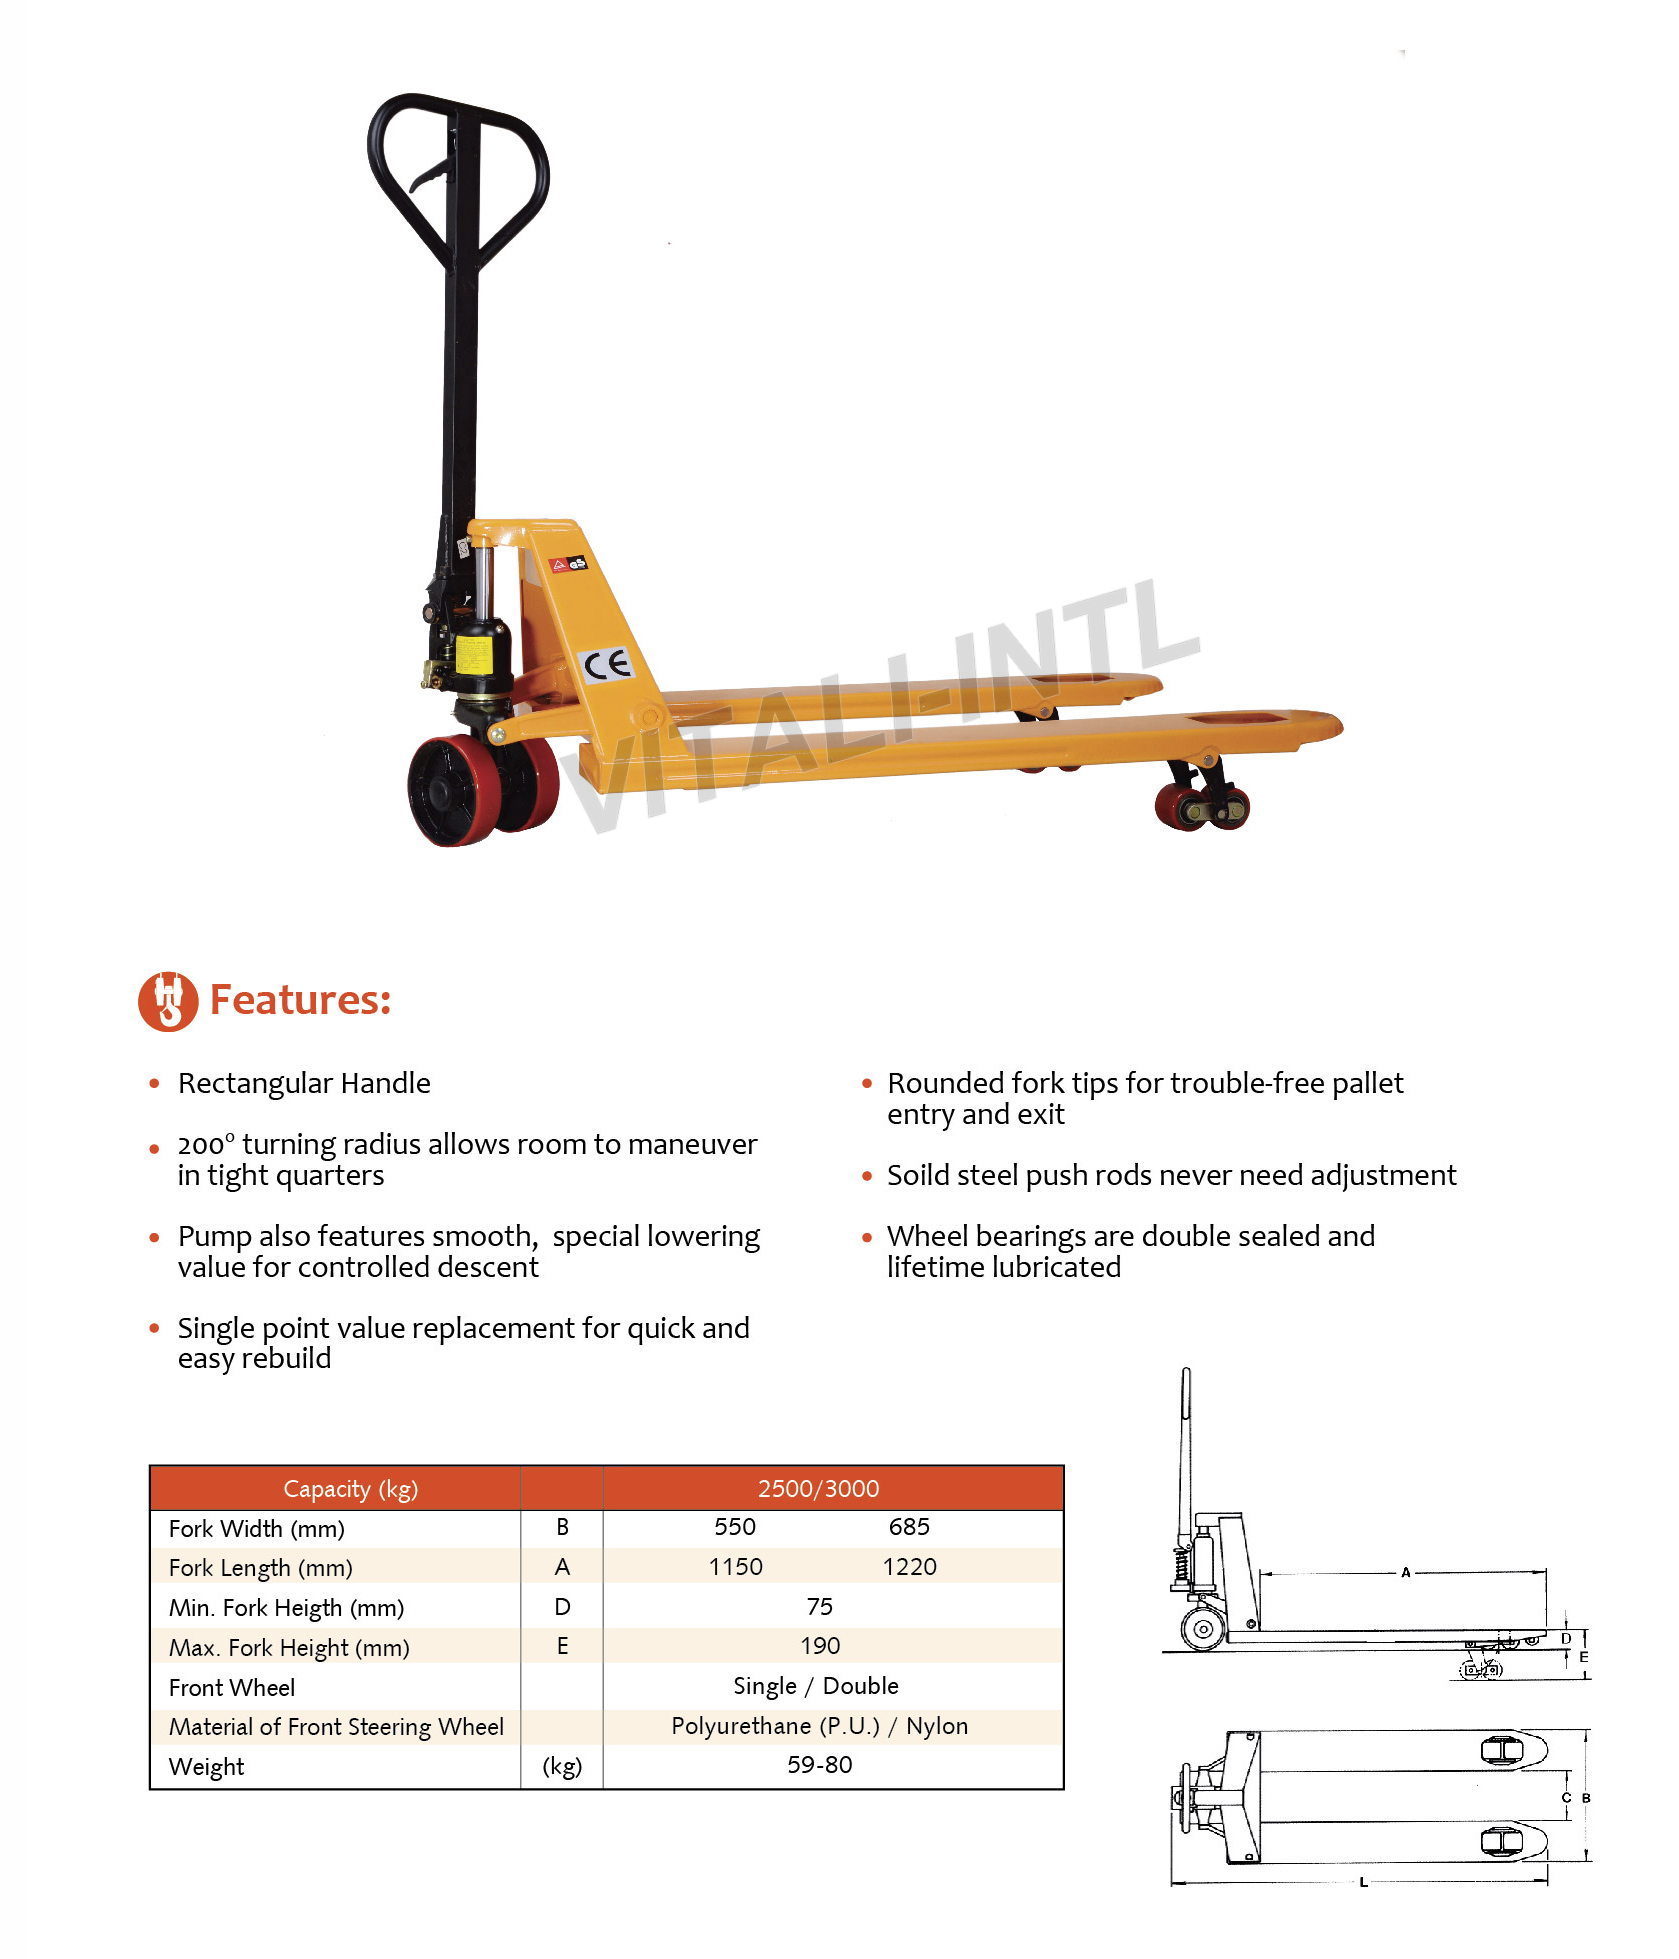 VITALI-INTL Pallet Trucks OBK Type Specifications